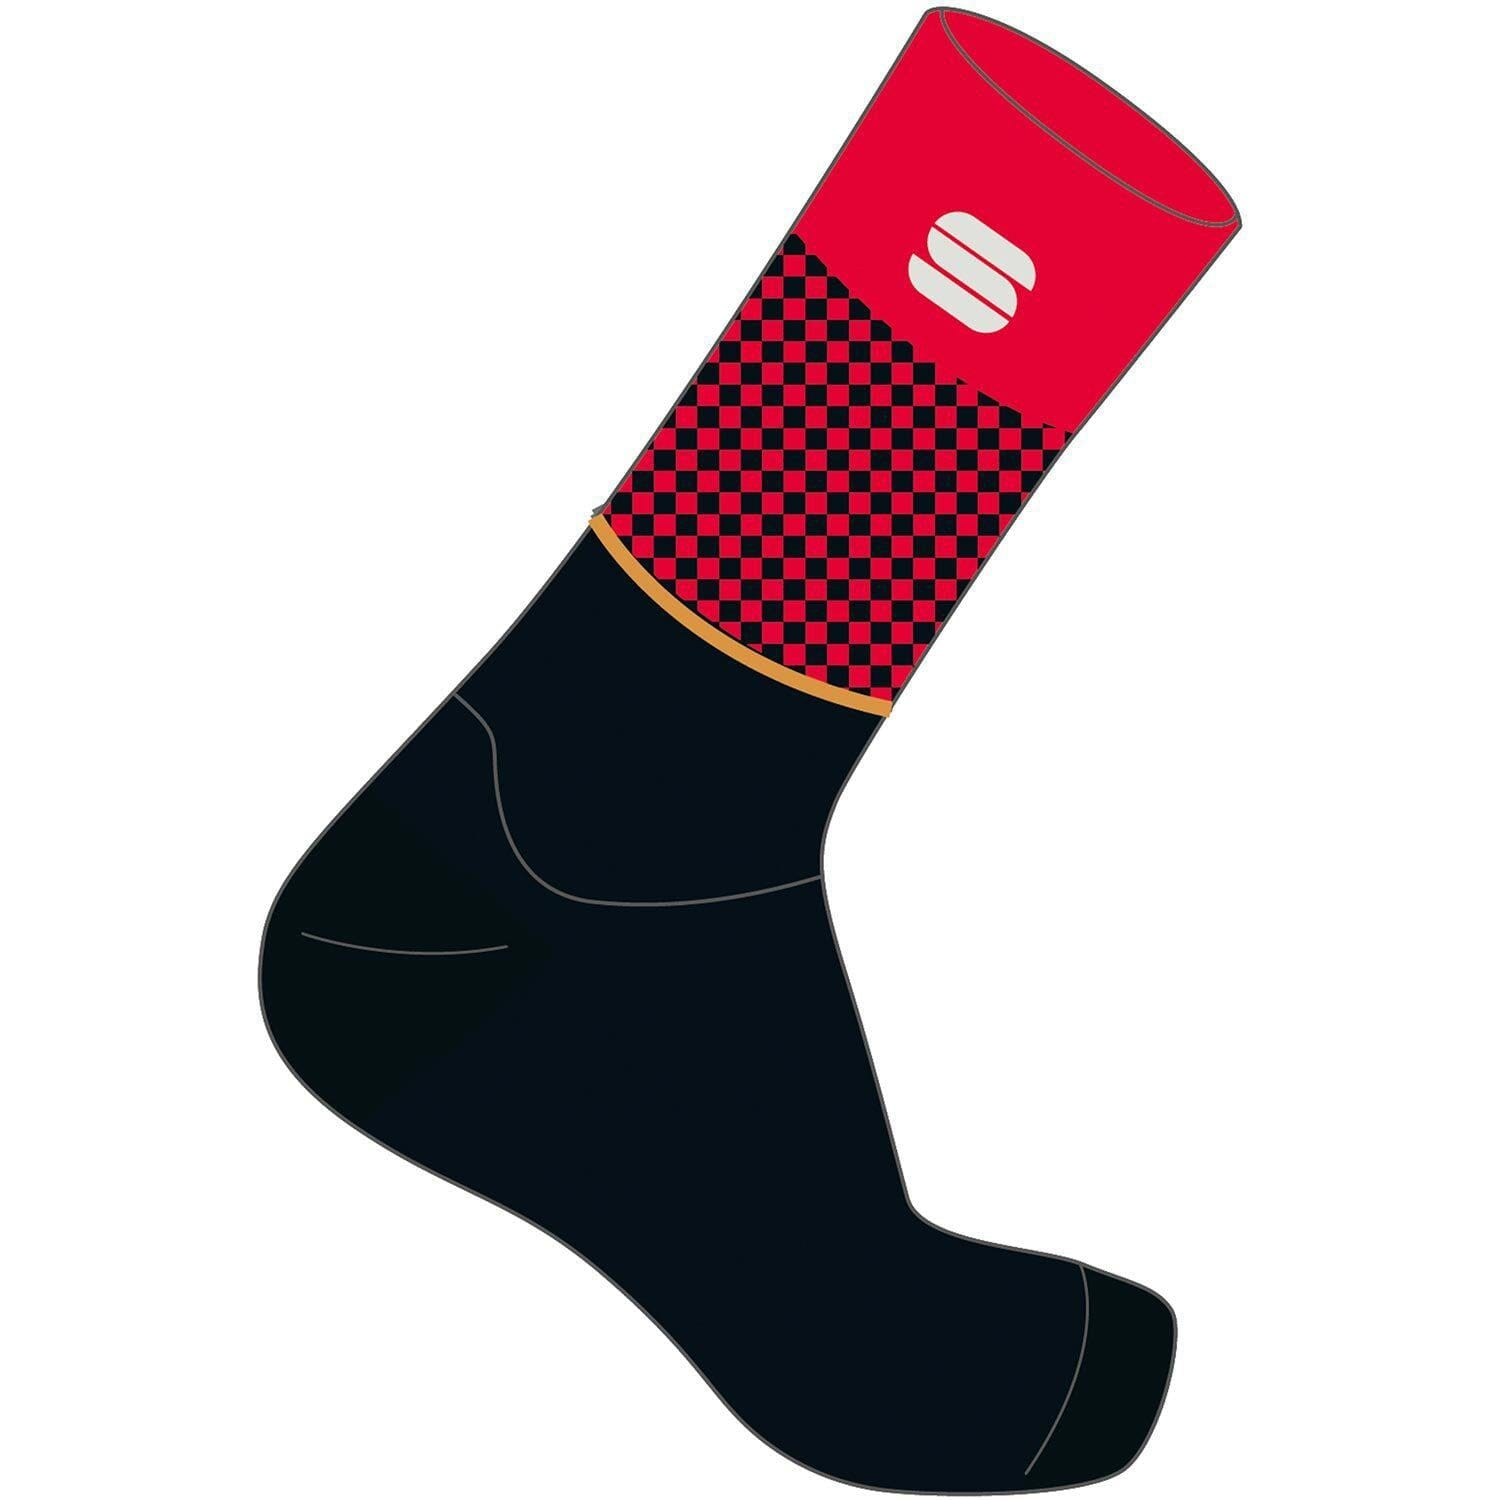 Sportful-Sportful Light Socks-Red-S-SF2104156712-saddleback-elite-performance-cycling